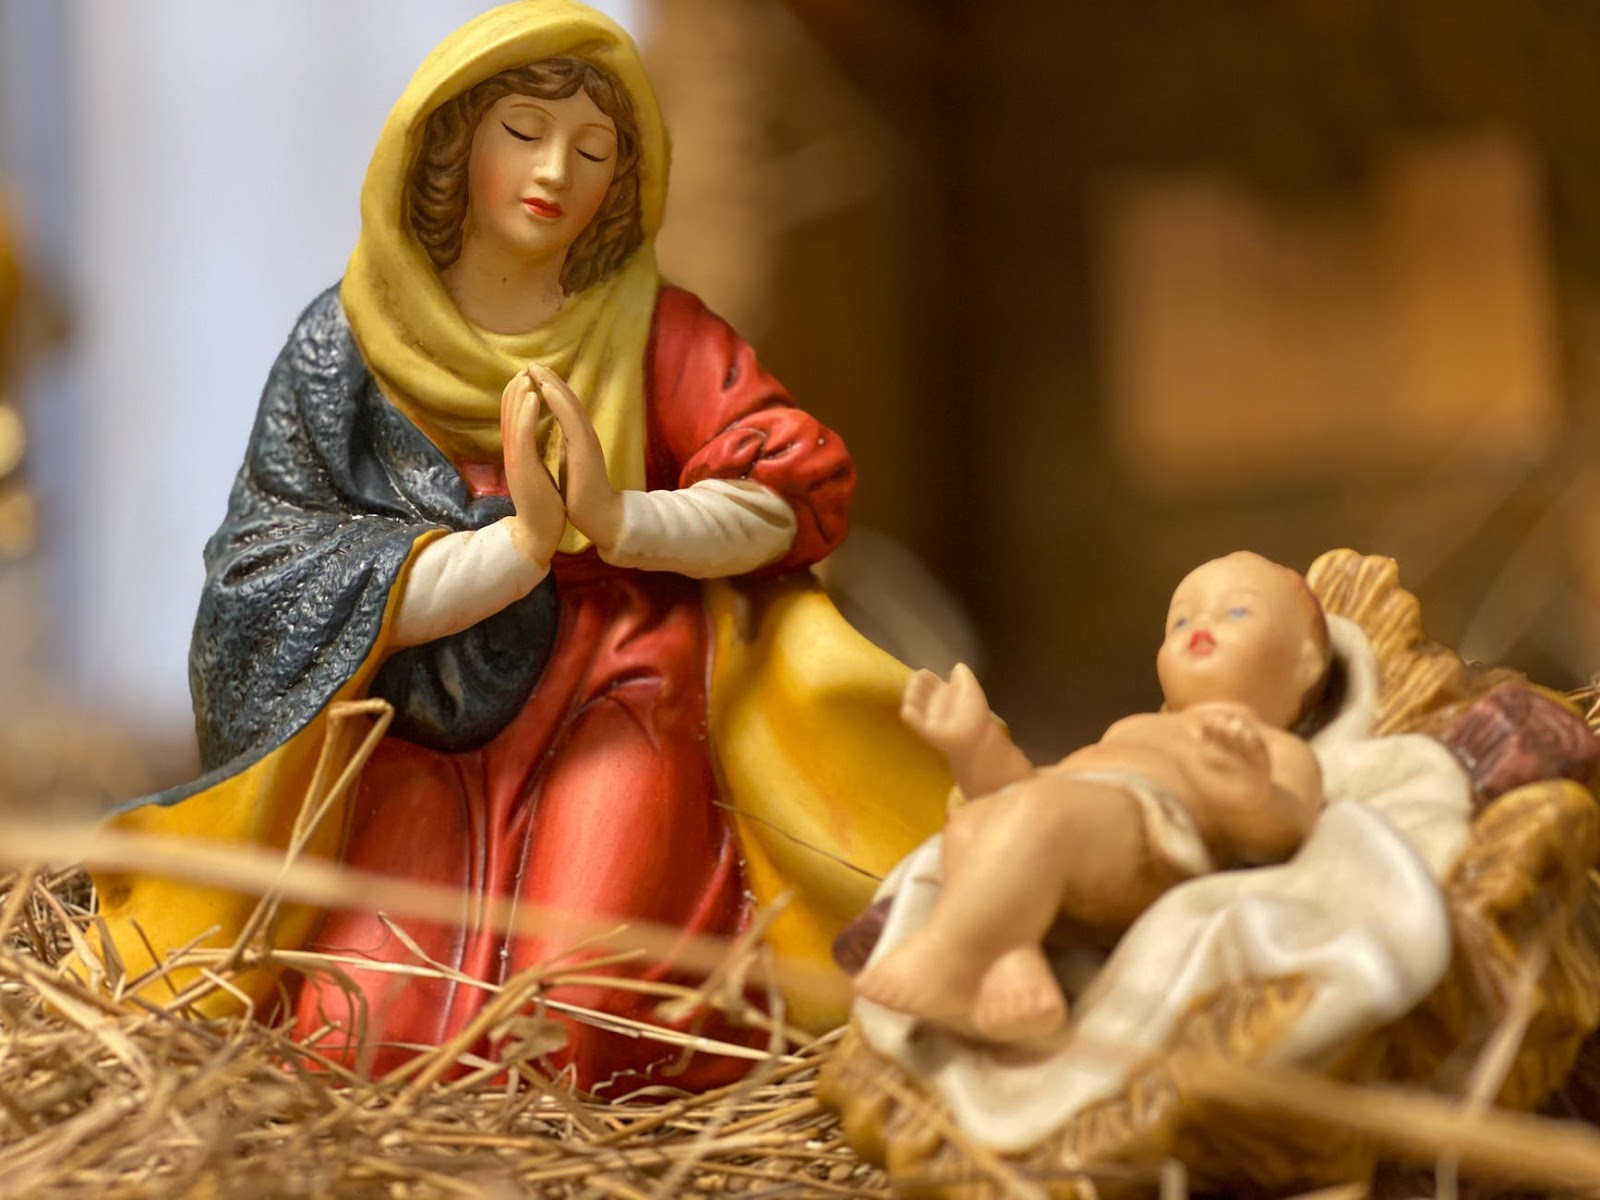 Nativity statues of Mary and baby Jesus